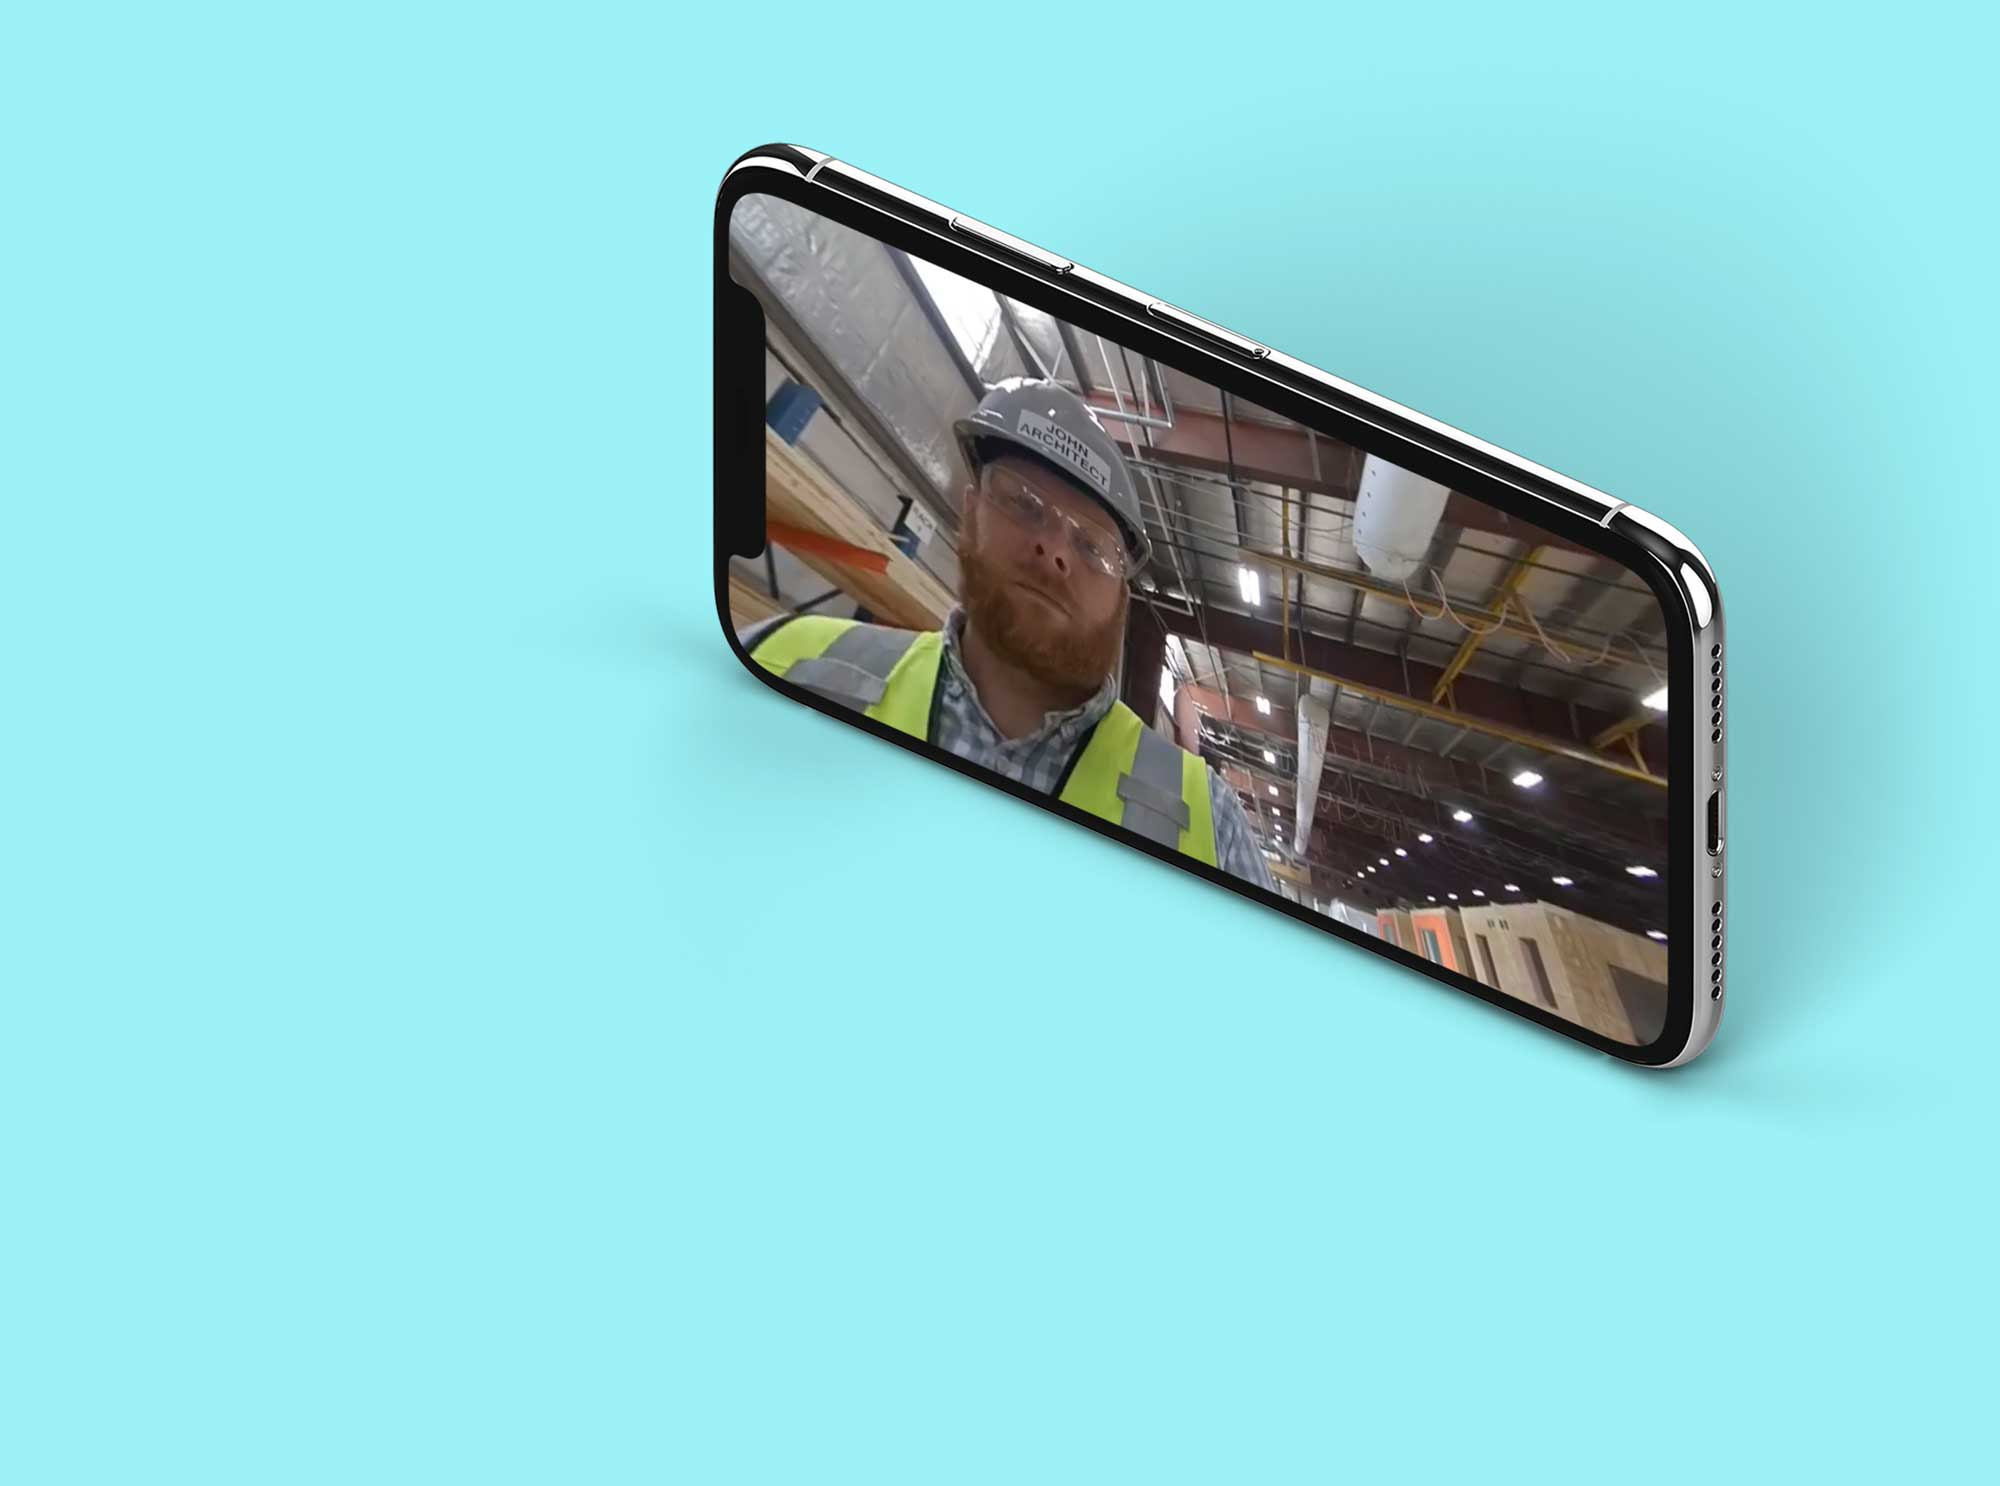 For More VR Fun - Check out these videos with your phone. Simply move your phone around, or use your fingers on the screen to move the camera.